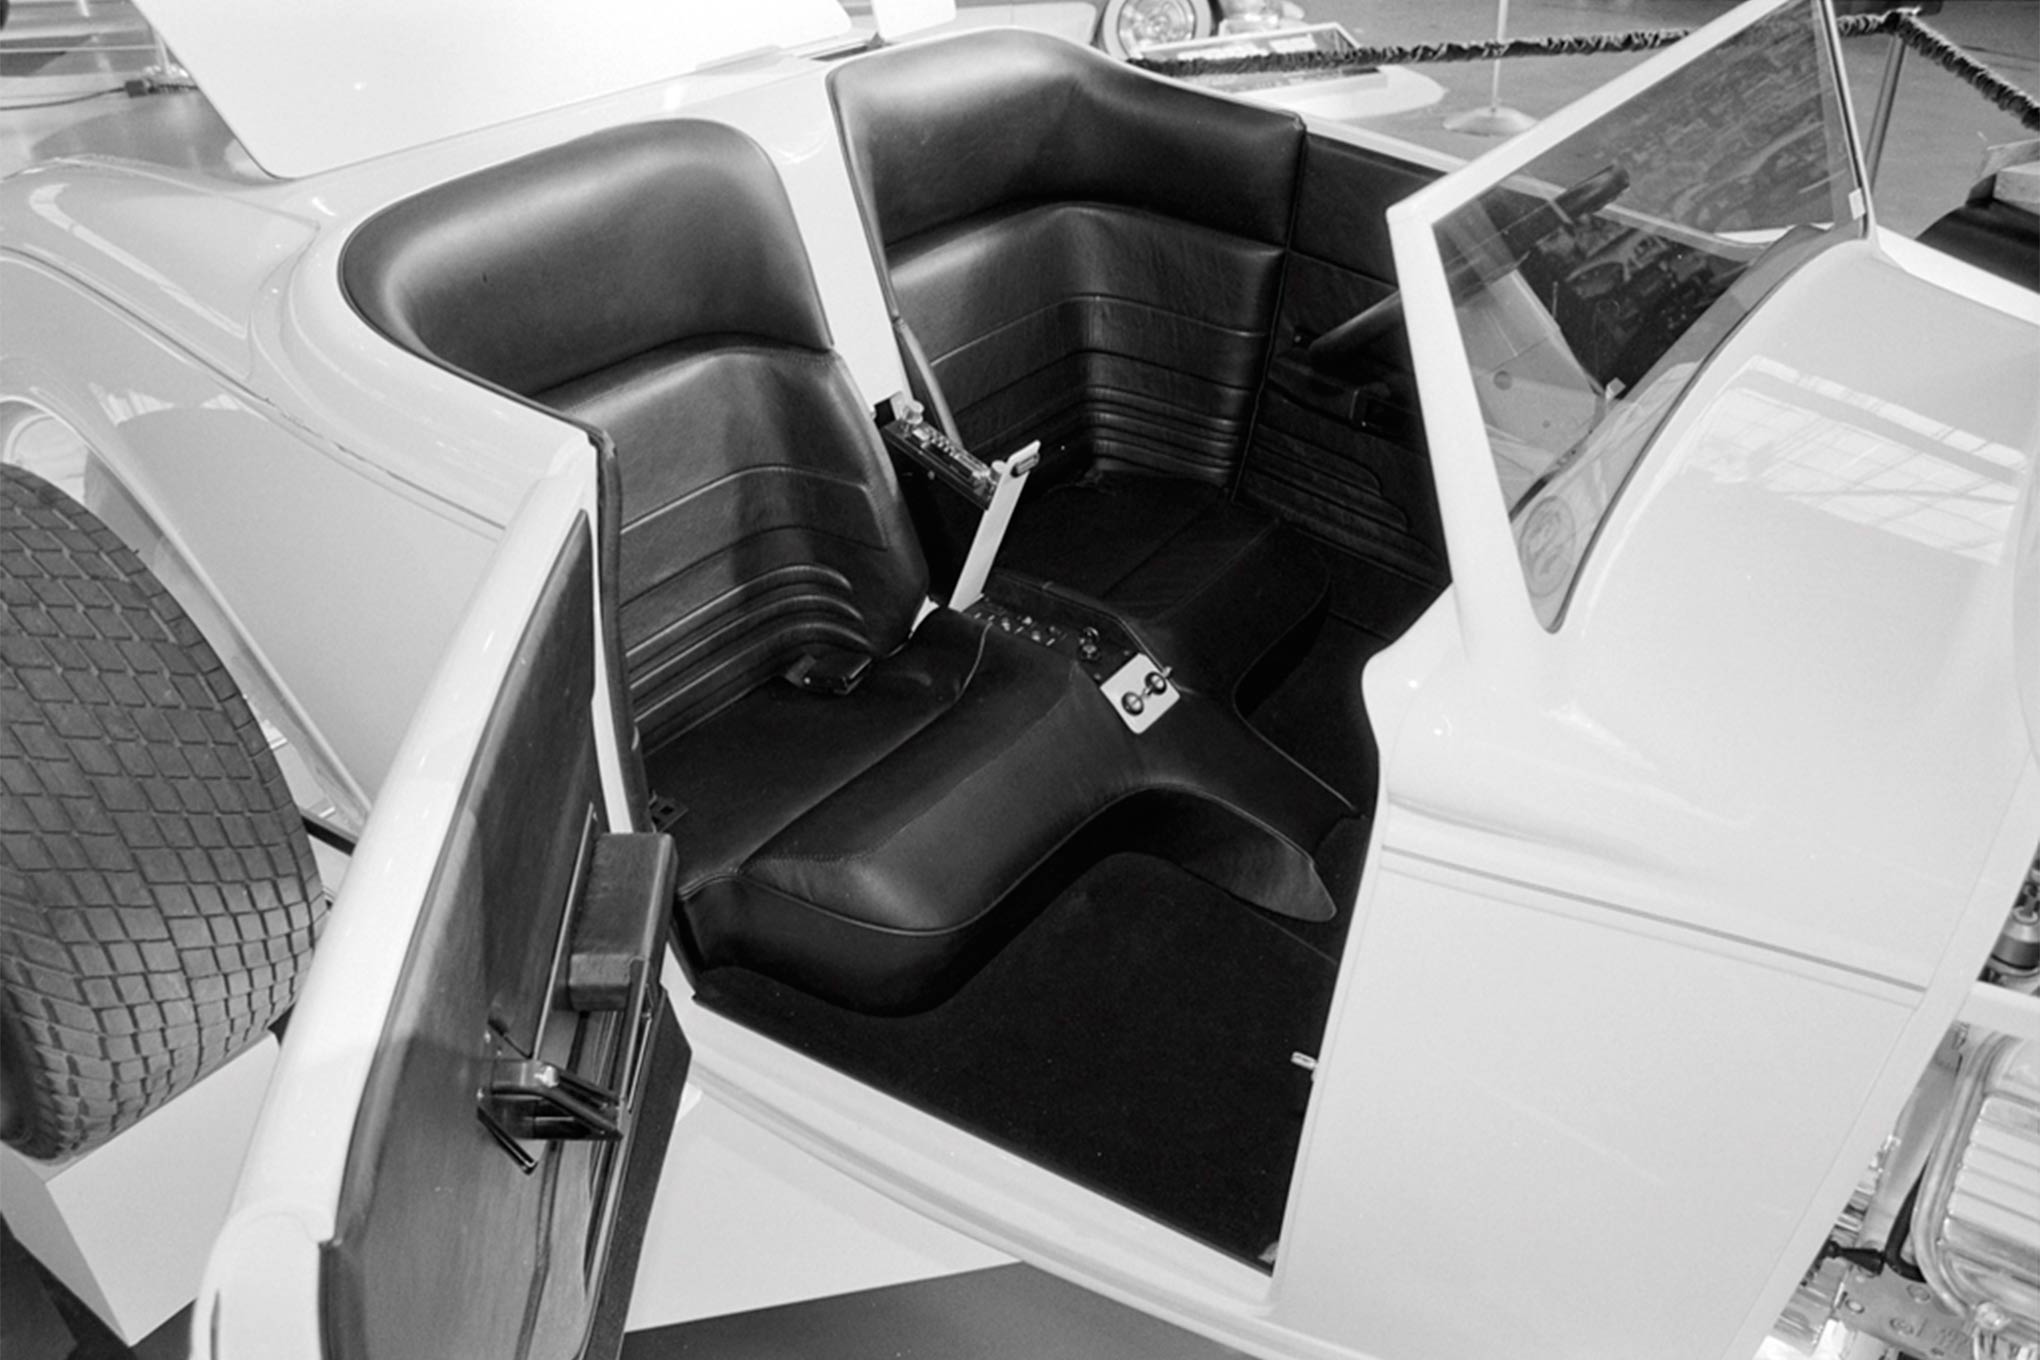 The custom black leather interior as it looked in Oakland way back when. We'll be seeing it again in Pomona soon.